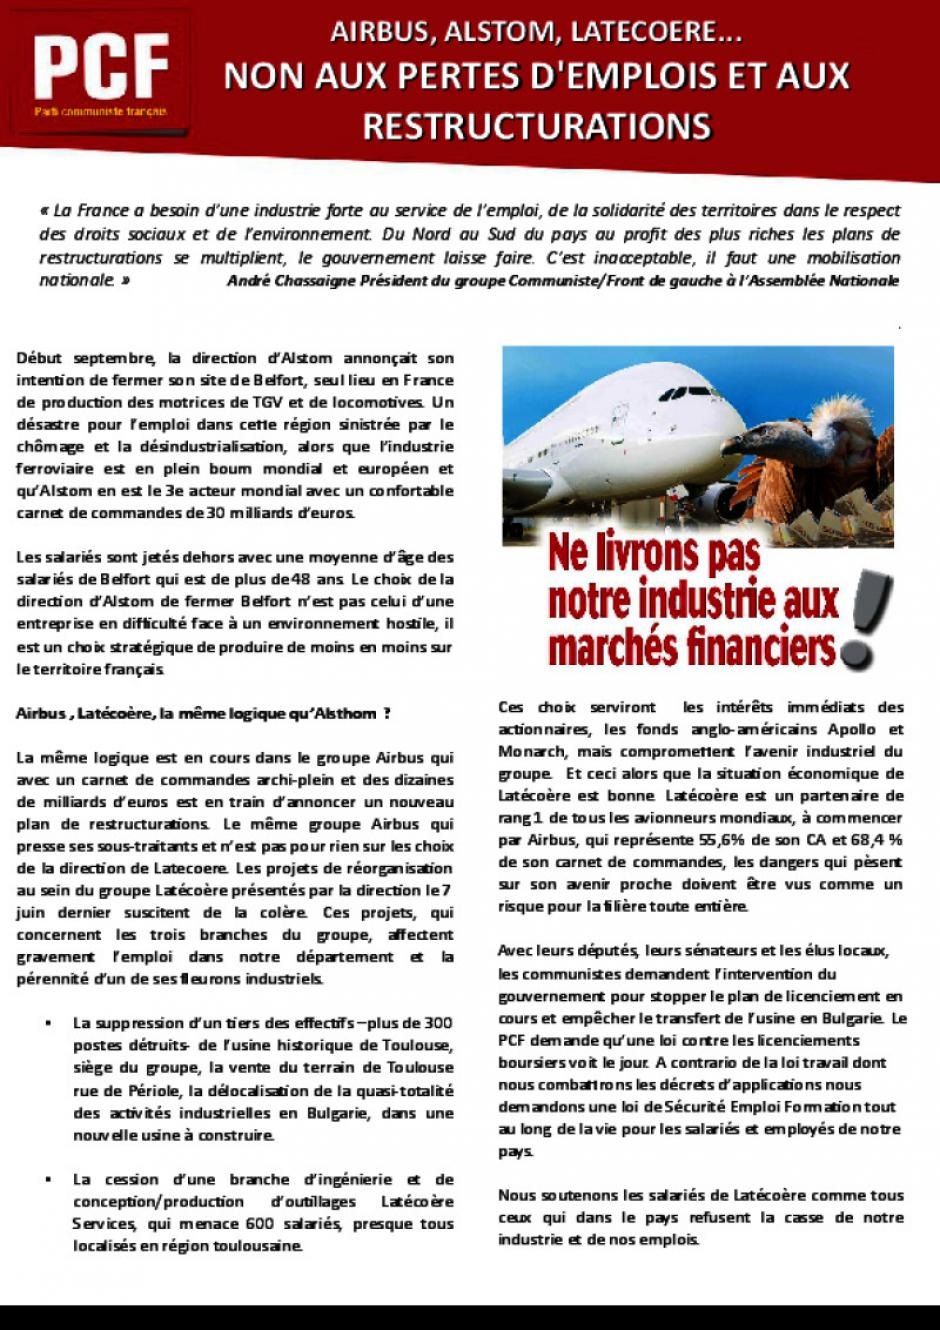 TRACT (29/09/16)